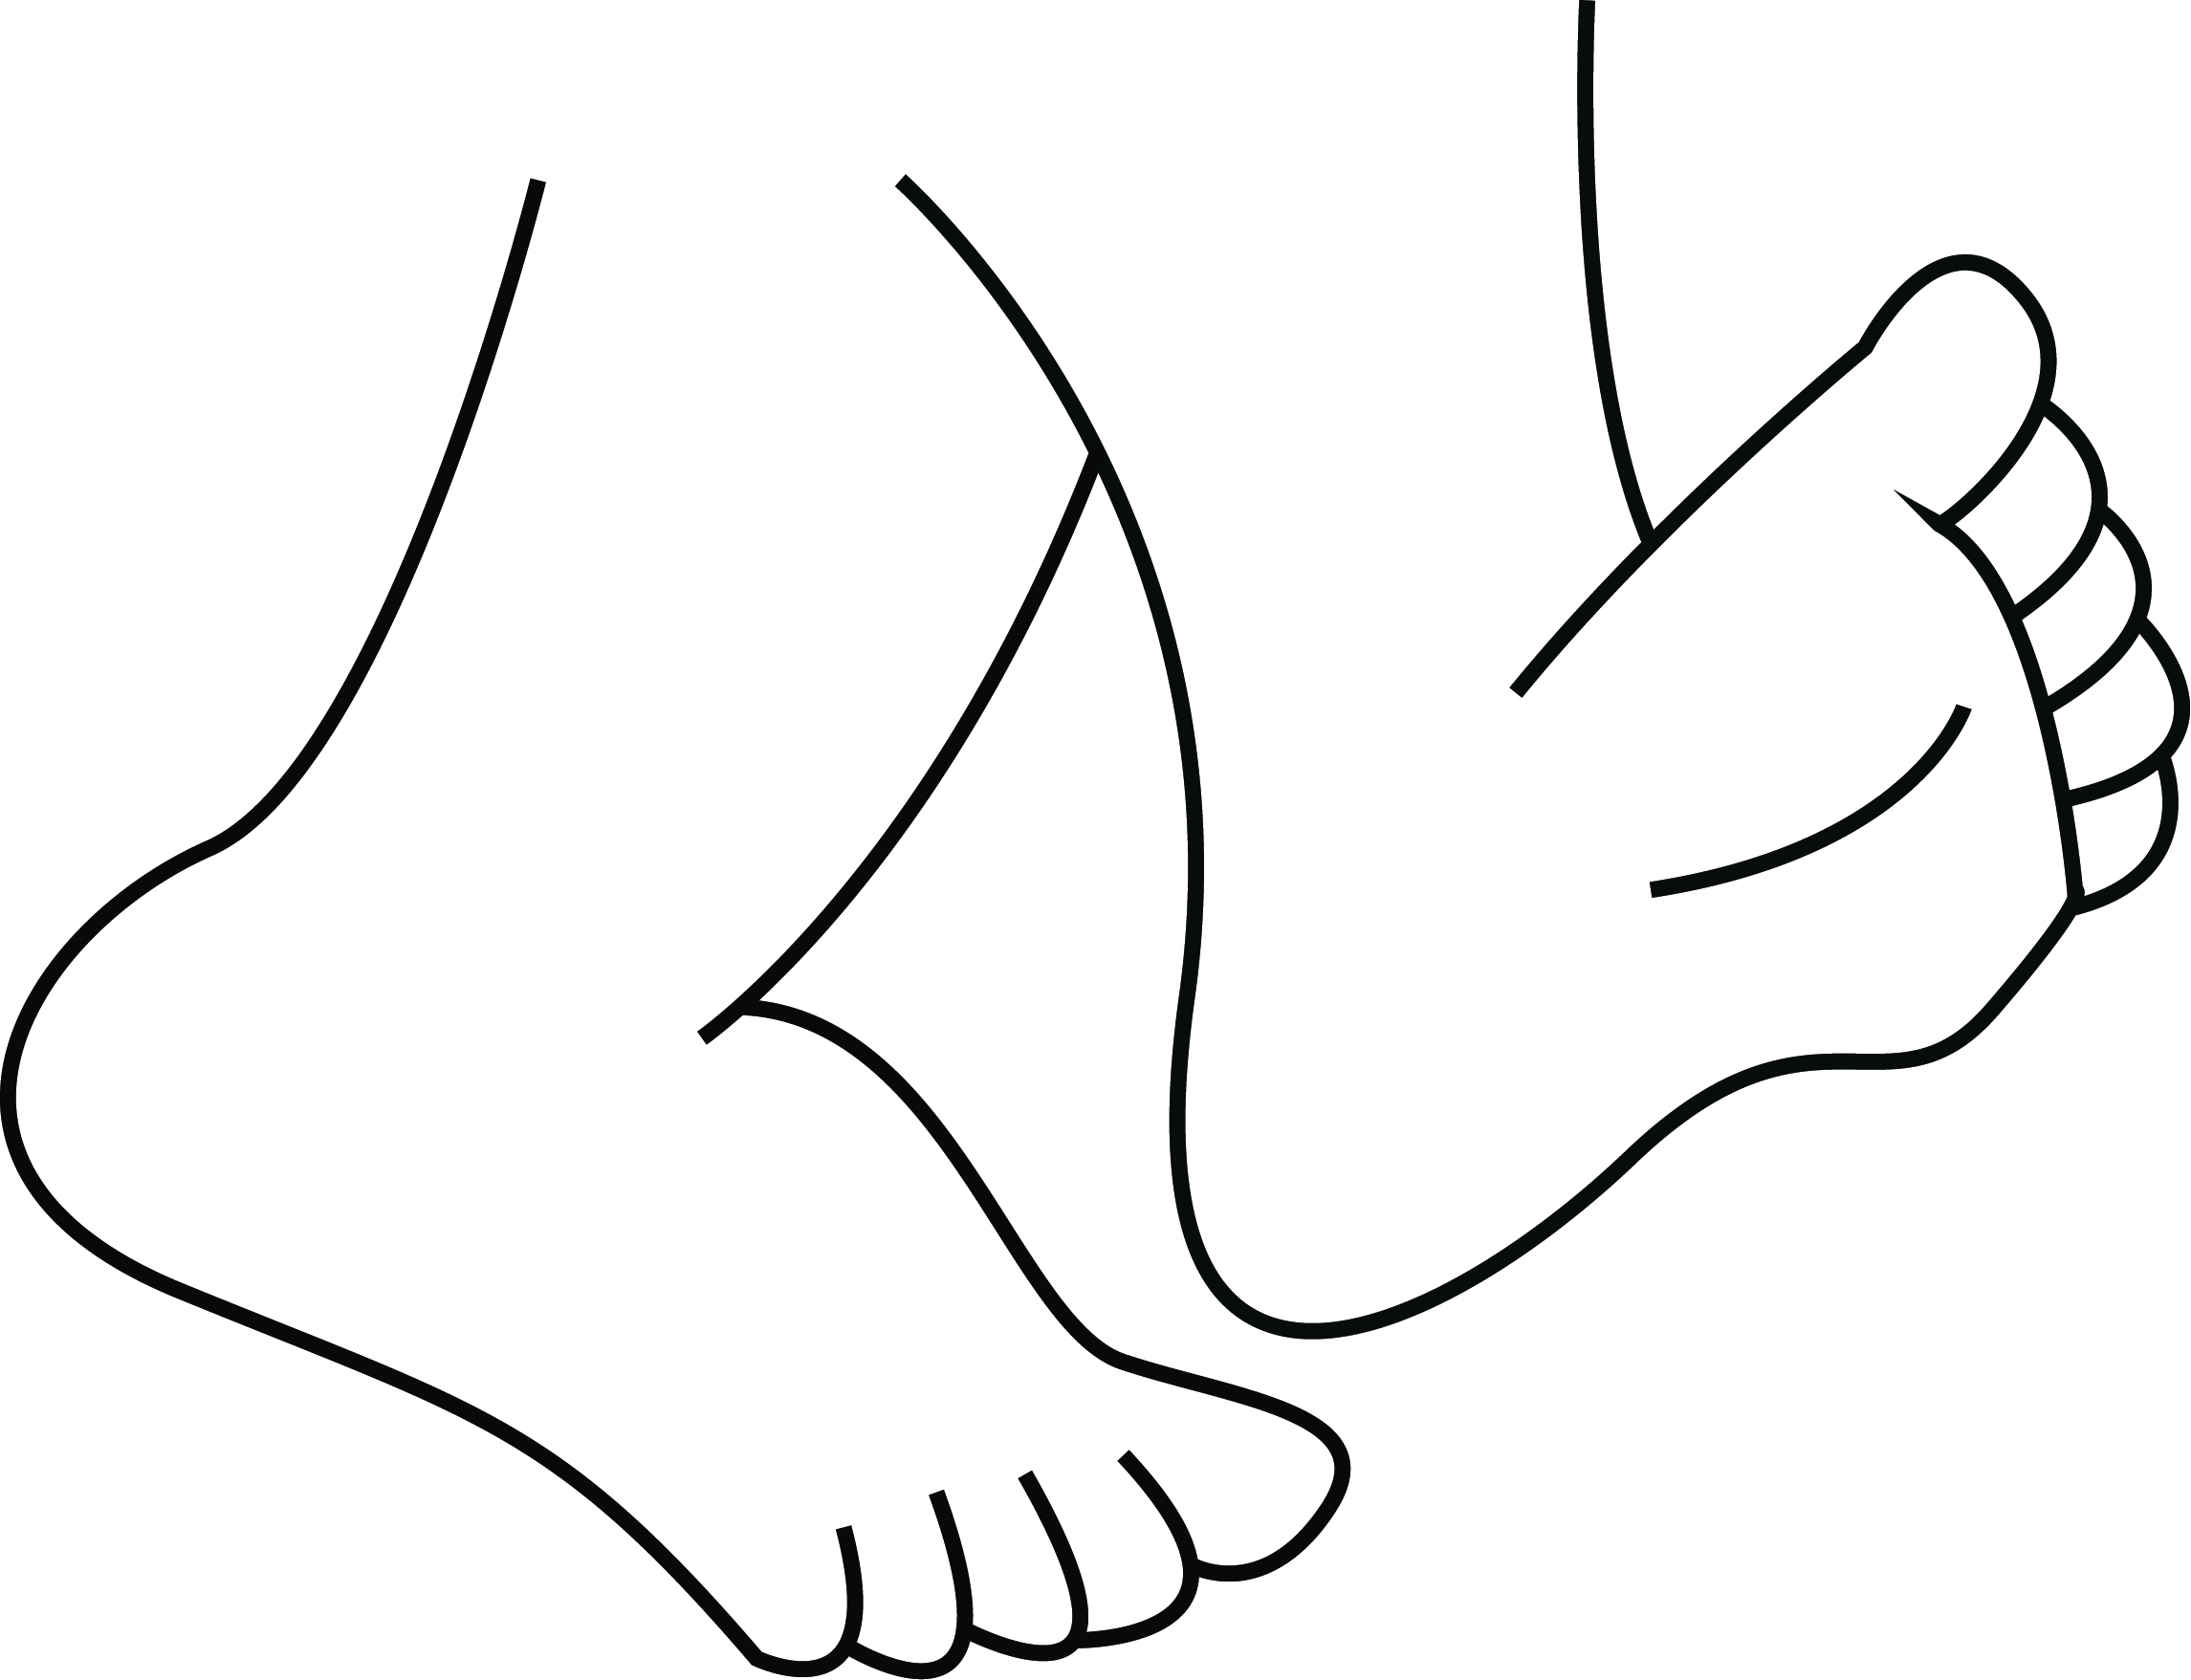 Free Cartoon Feet Download Free Clip Art Free Clip Art On Clipart Library